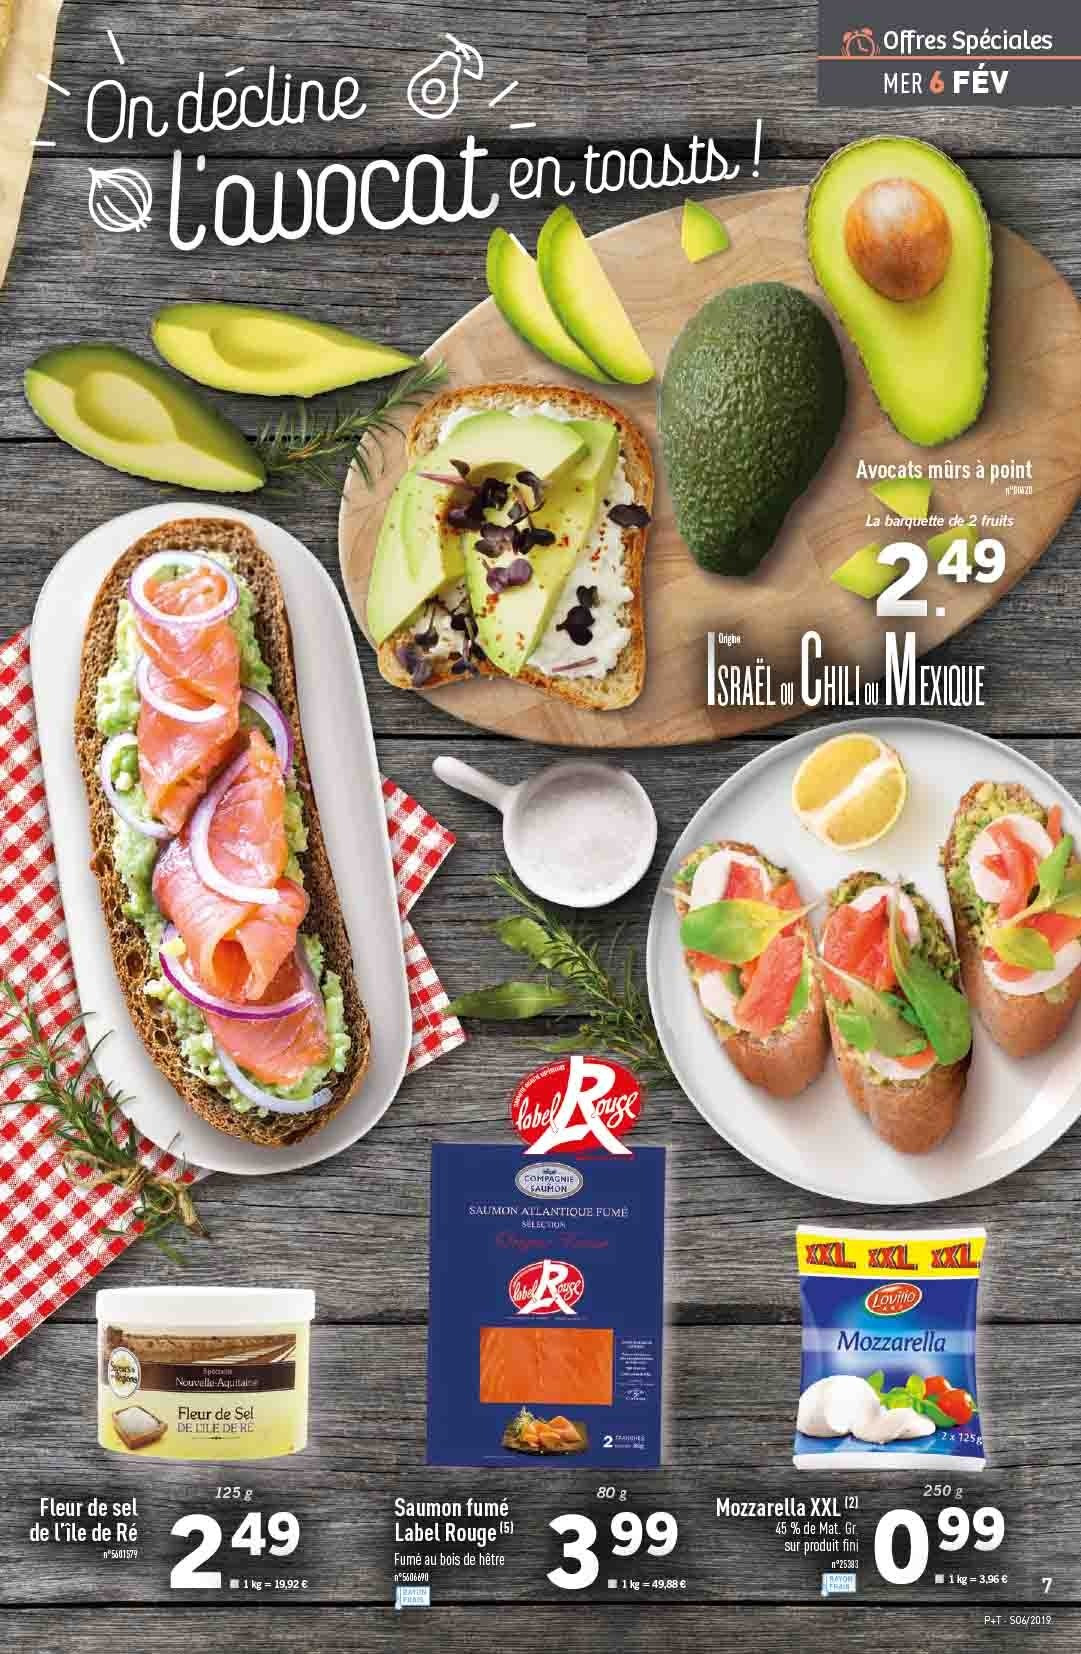 Catalogue Lidl - 06.02.2019 - 12.02.2019. Page 7.